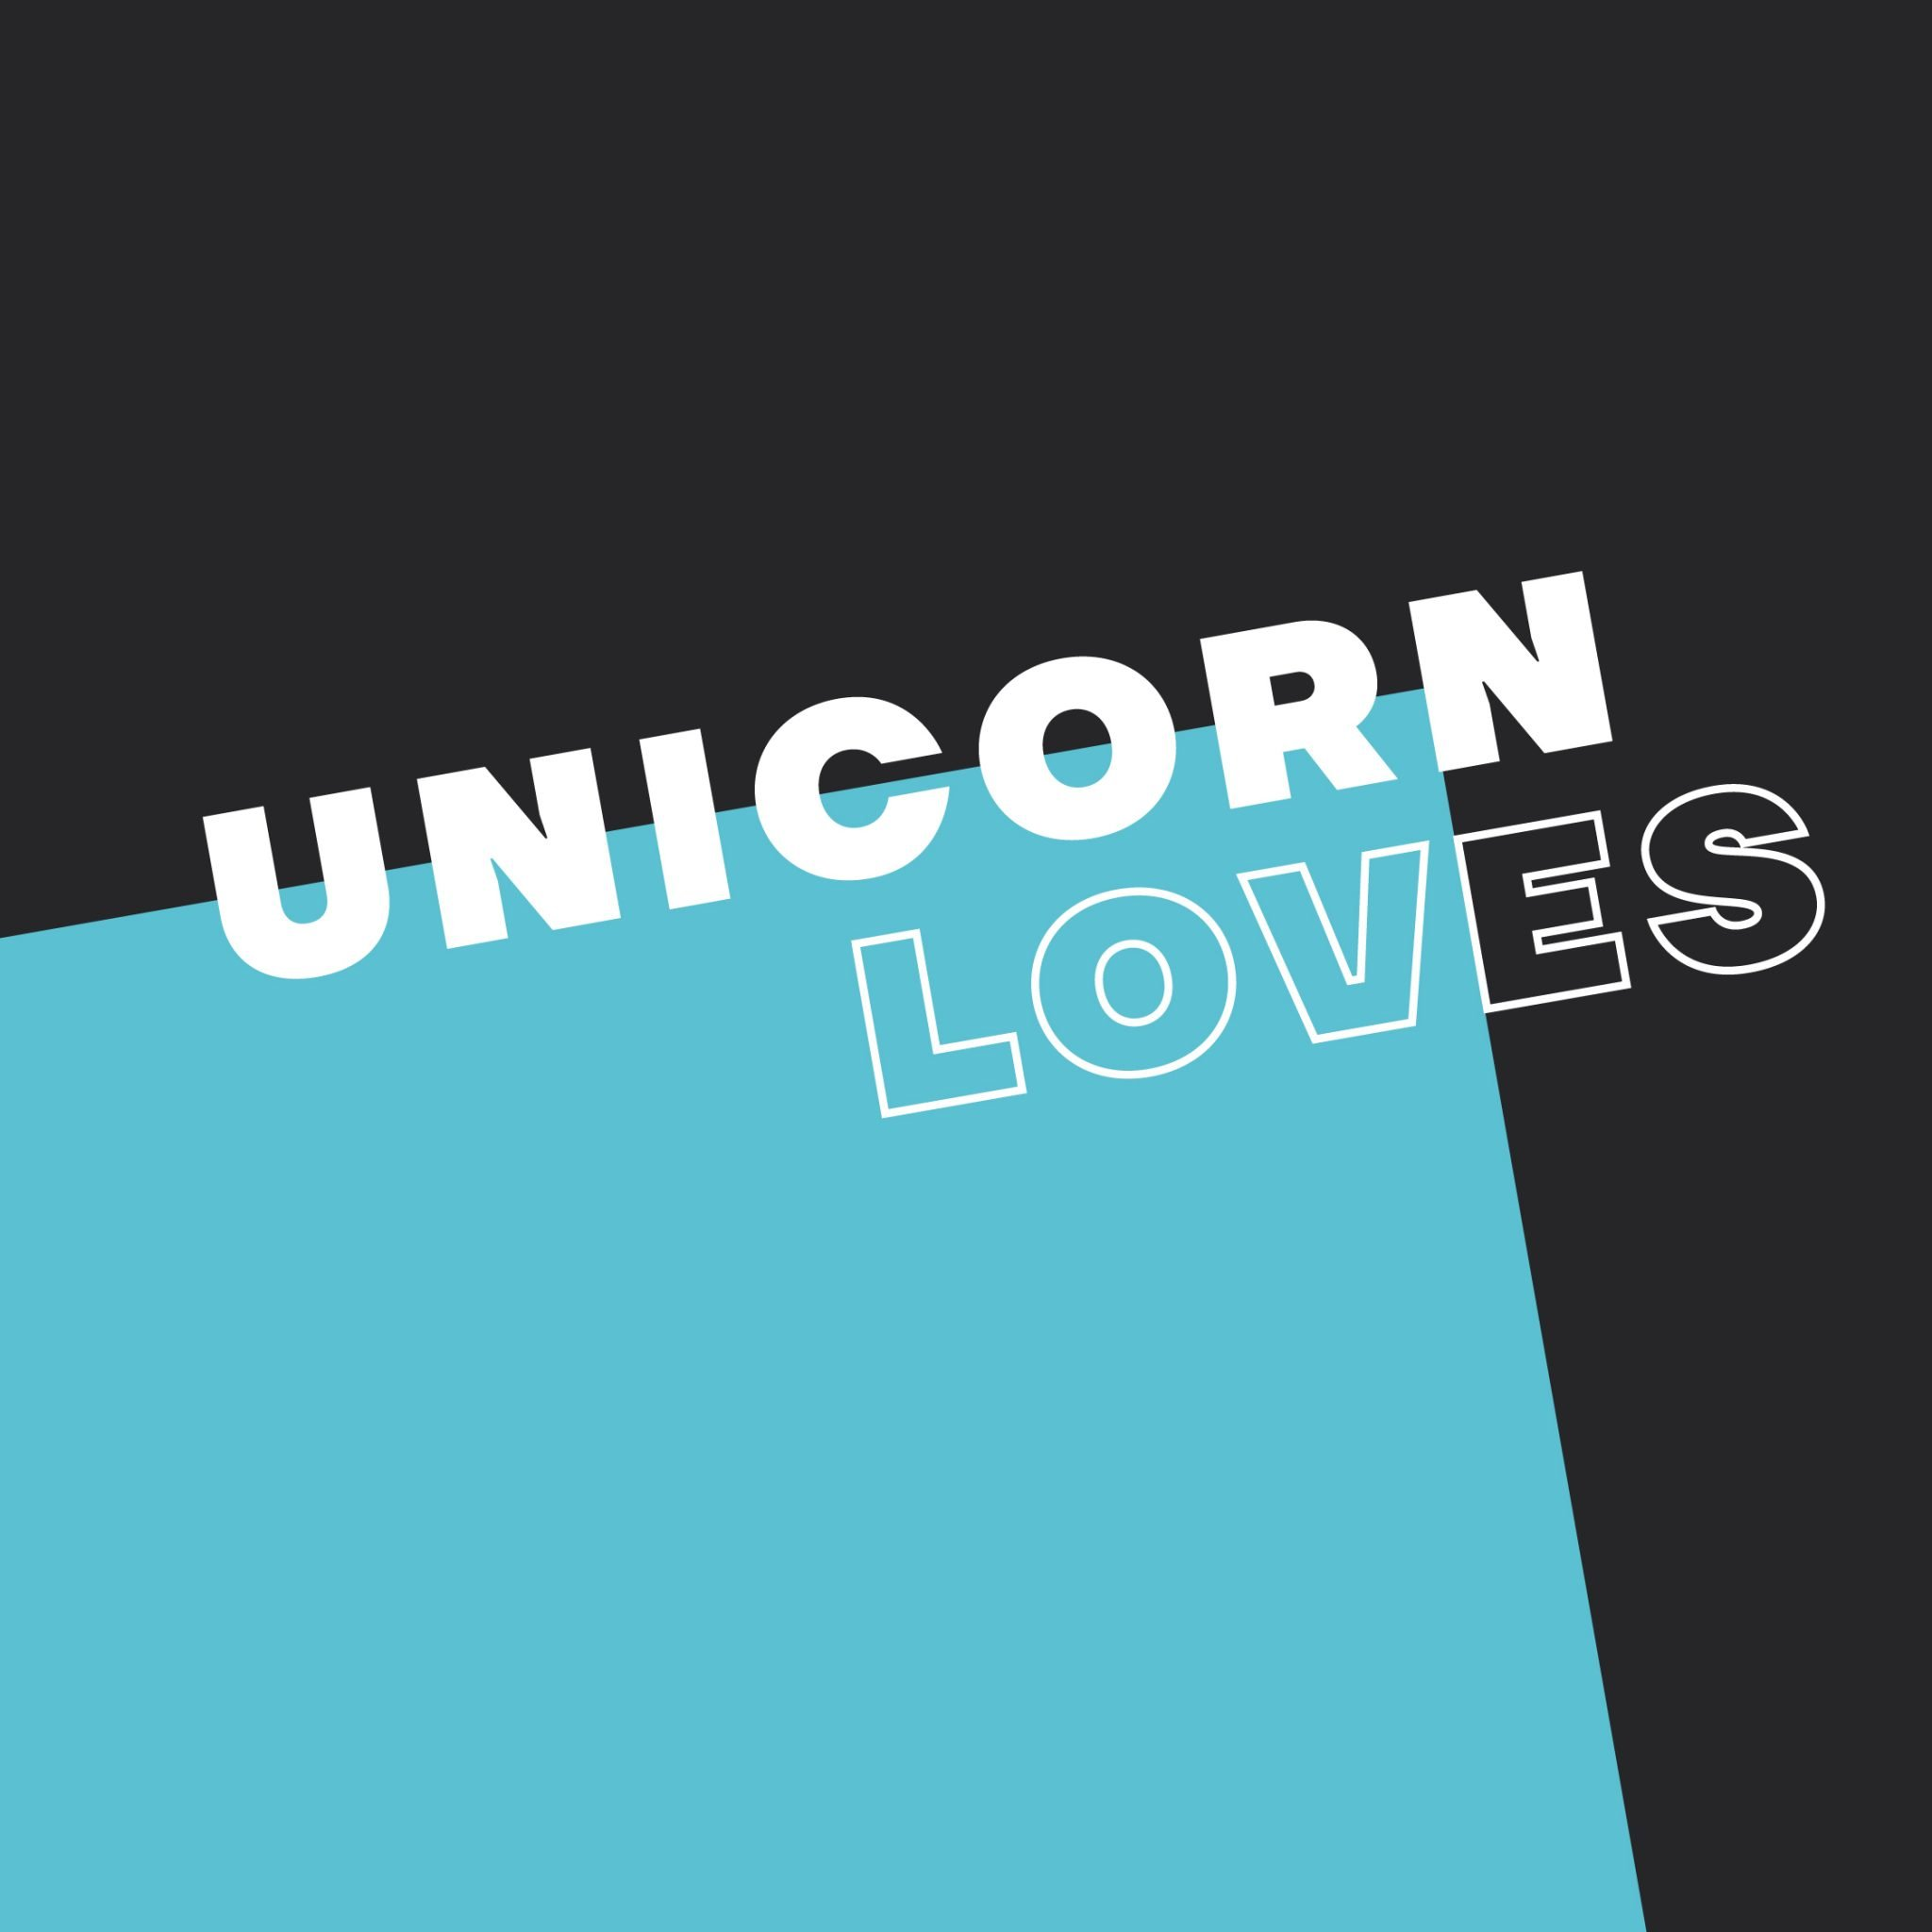 A black background with an interjecting teal blue square at a jagged angle. On top, the text reads 'Unicorn Loves' in all white capitals